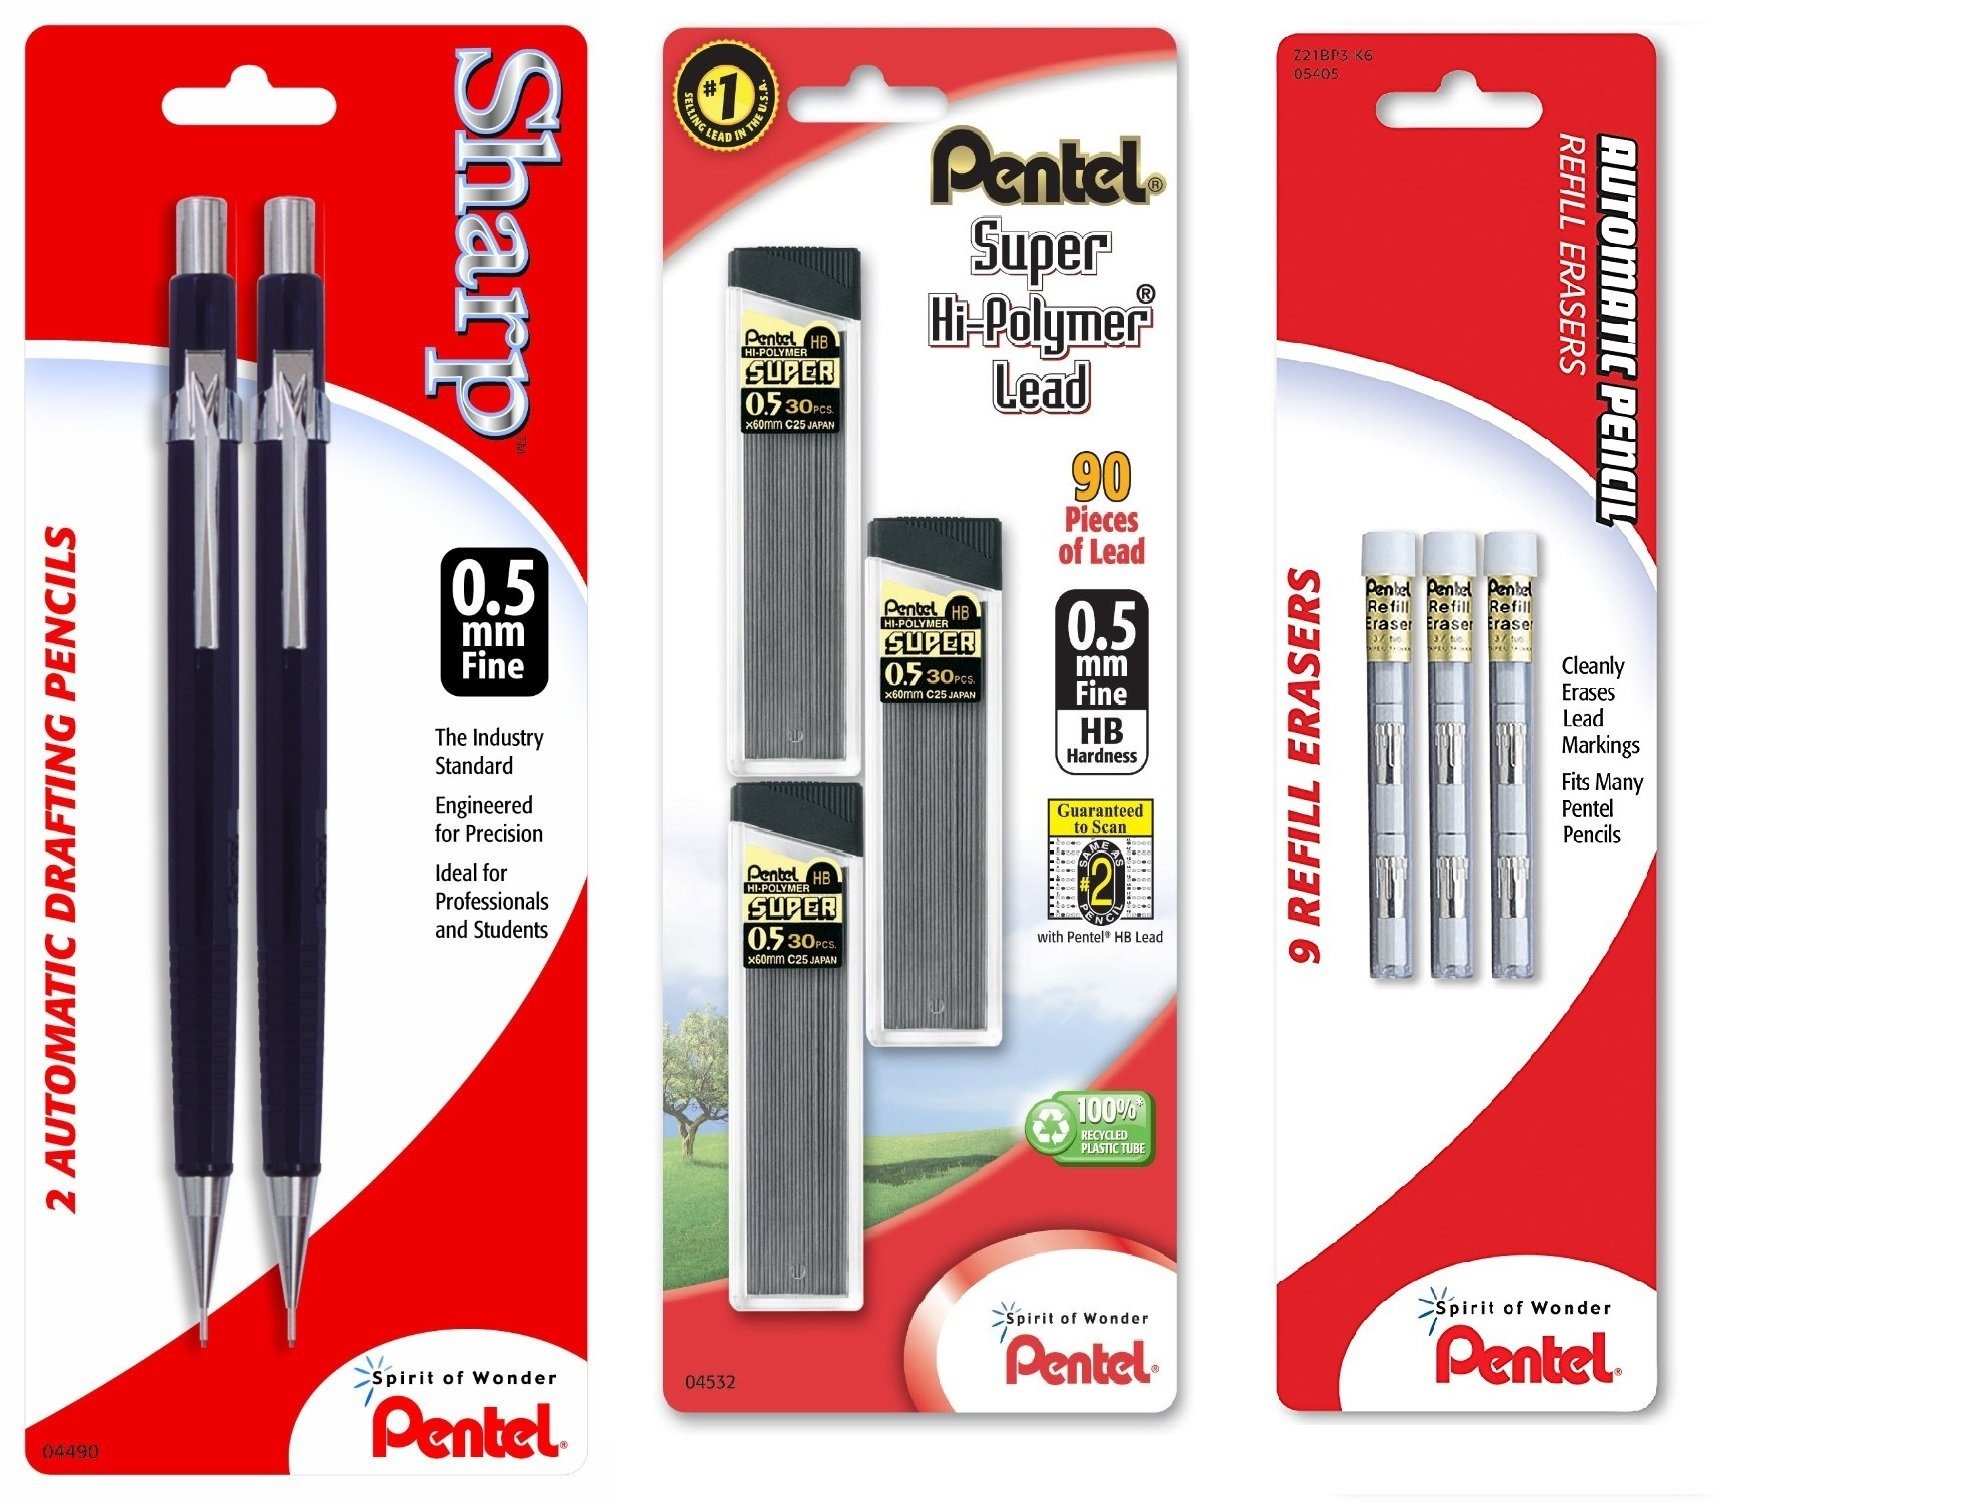 Pentel Sharp Automatic Pencil, 0.5mm, Black Barrels, 2 Pack, with 0.5mm Lead Refill and Z21 Eraser Refill (Bundle)